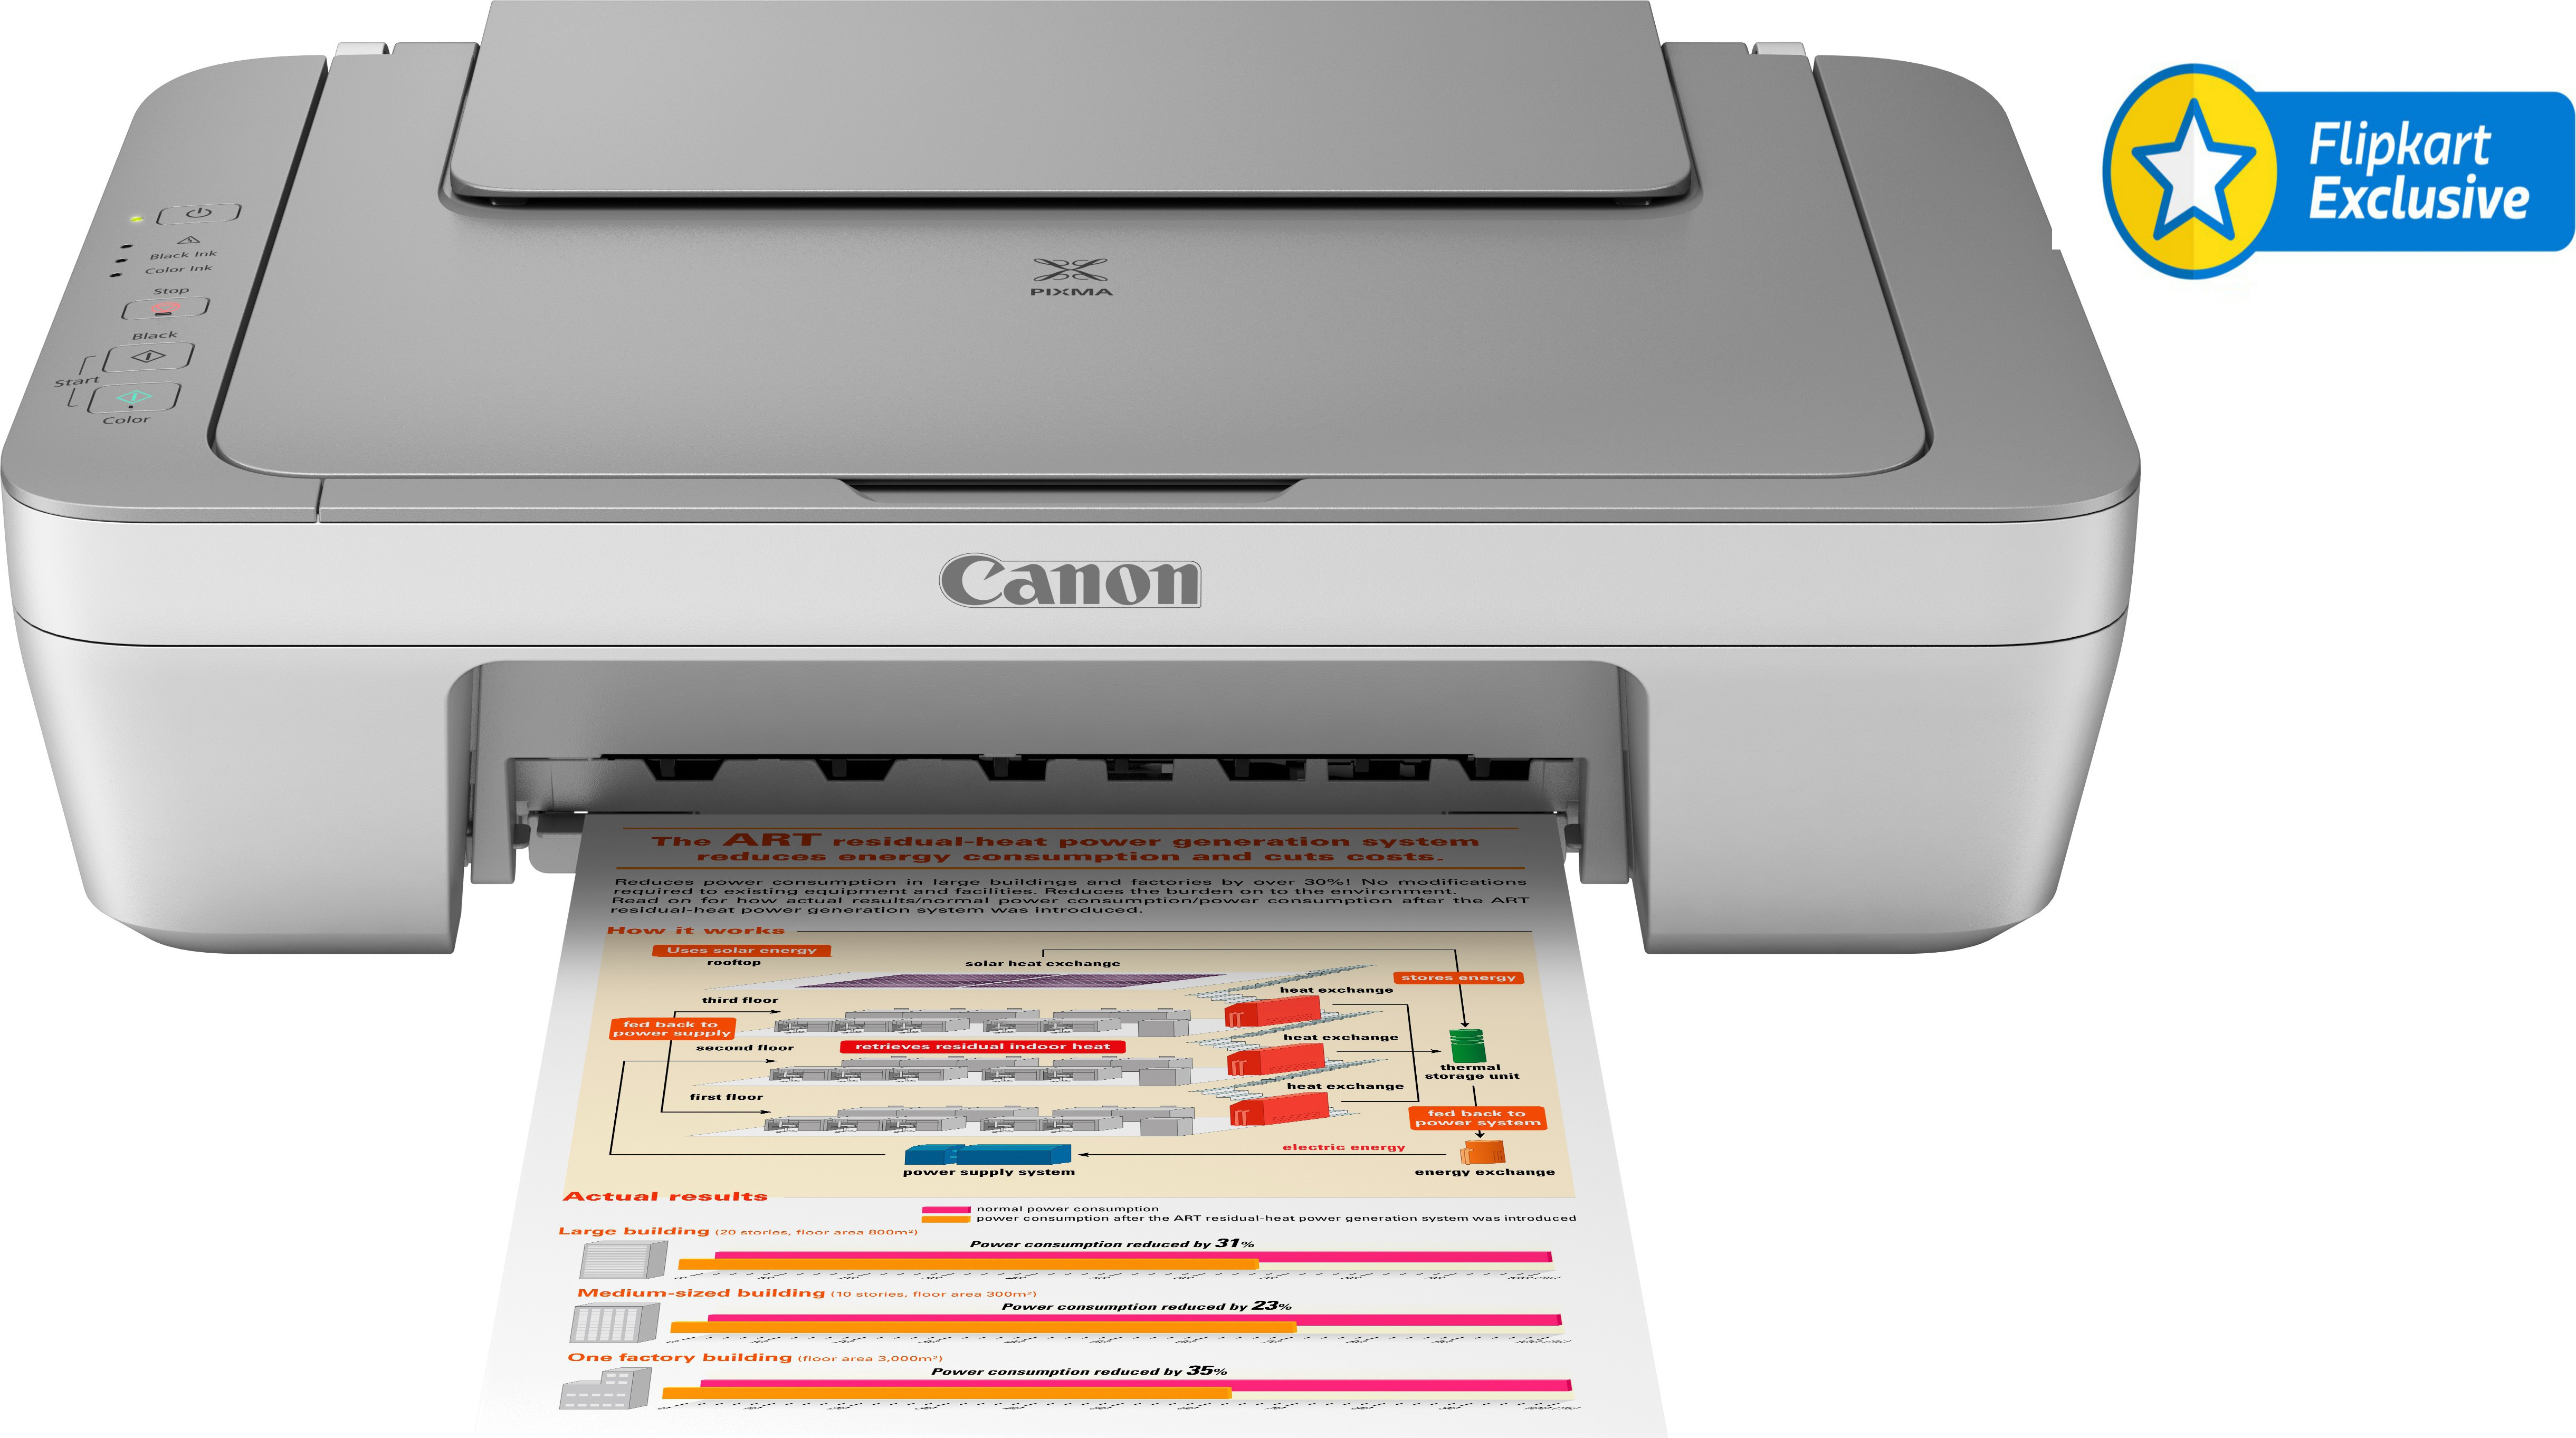 Flipkart - Print, Copy, Scan All in One Printer Under ₹2,499